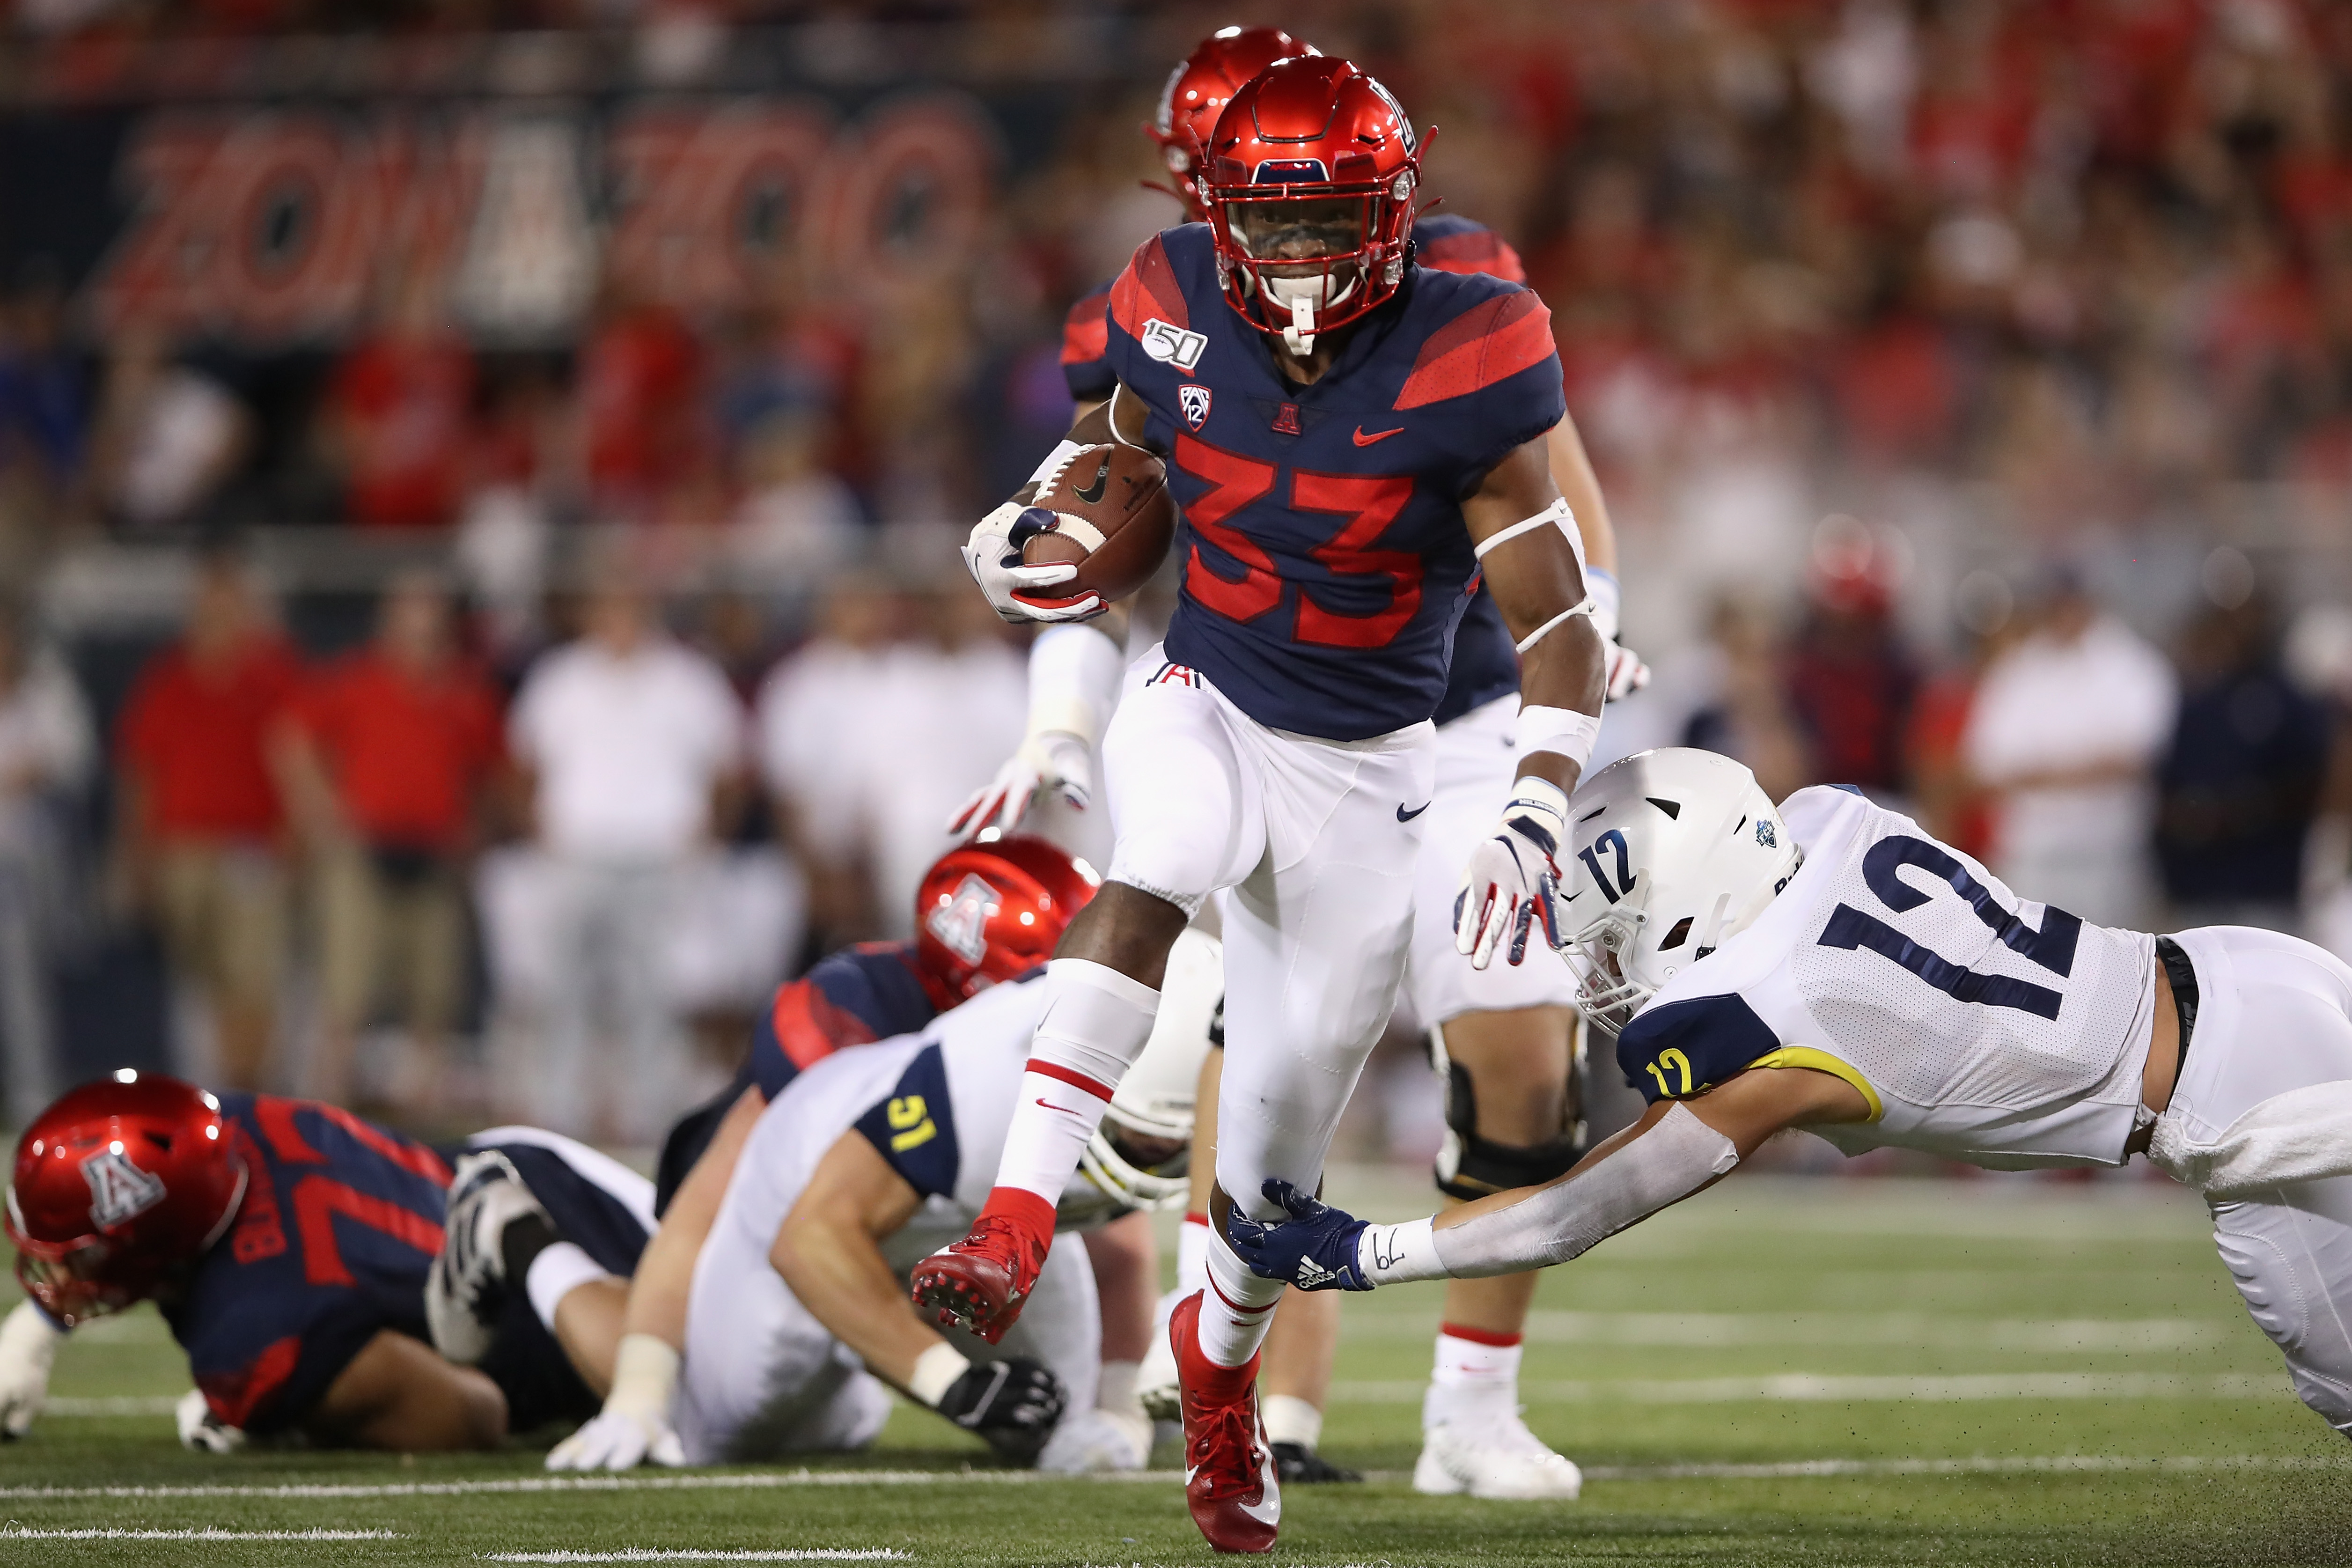 nathan-tilford-arizona-wildcats-running-back-twitter-2019-transfer-father-demarco-murray